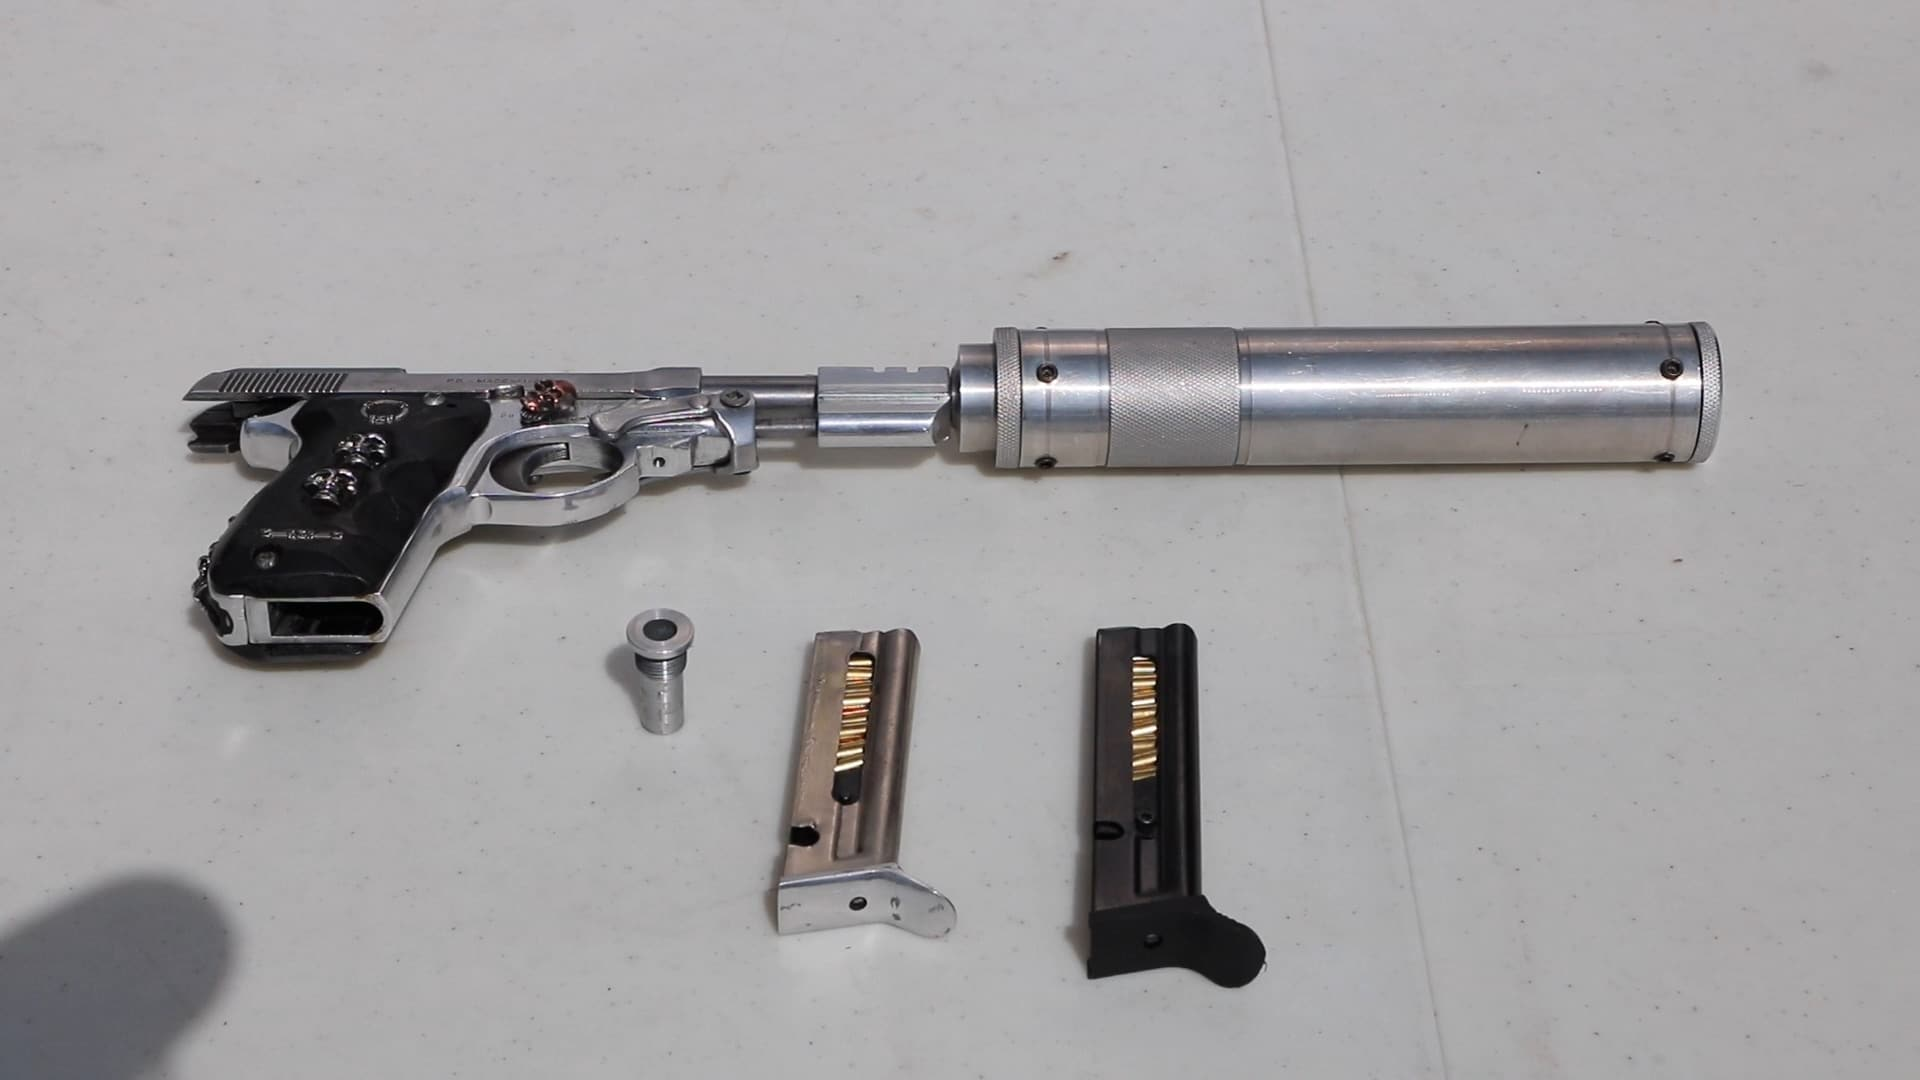 The Beretta with a seriously over-engineered suppressor